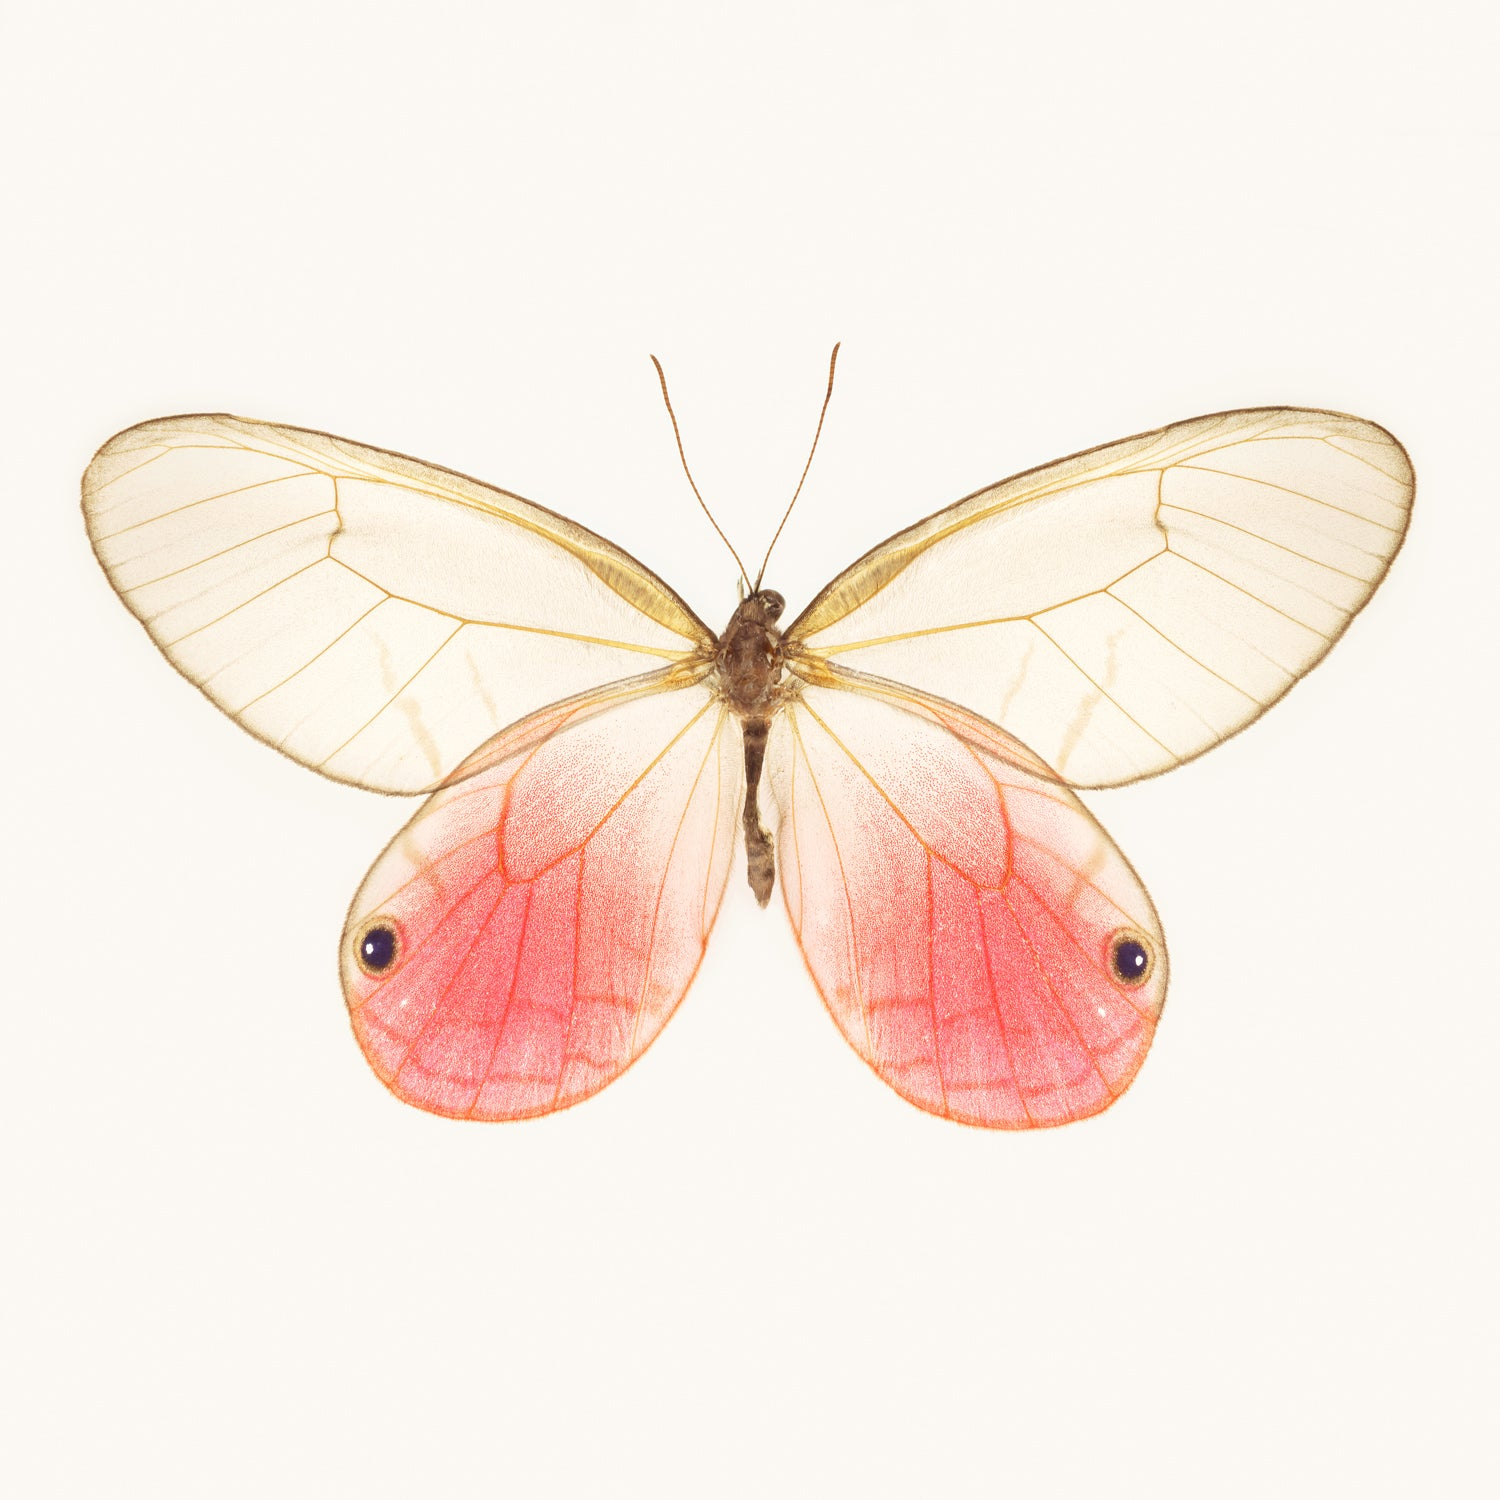 SQ Butterfly No. 1 - Pink Glasswing Butterfly